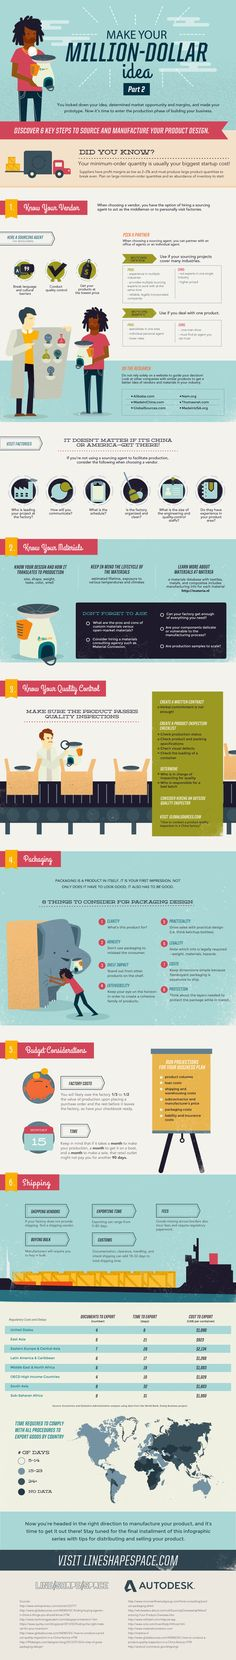 Make Your Million-Dollar Idea: Product Design Manufacturing Process   #SmallBusiness #ProductDesign #infographic